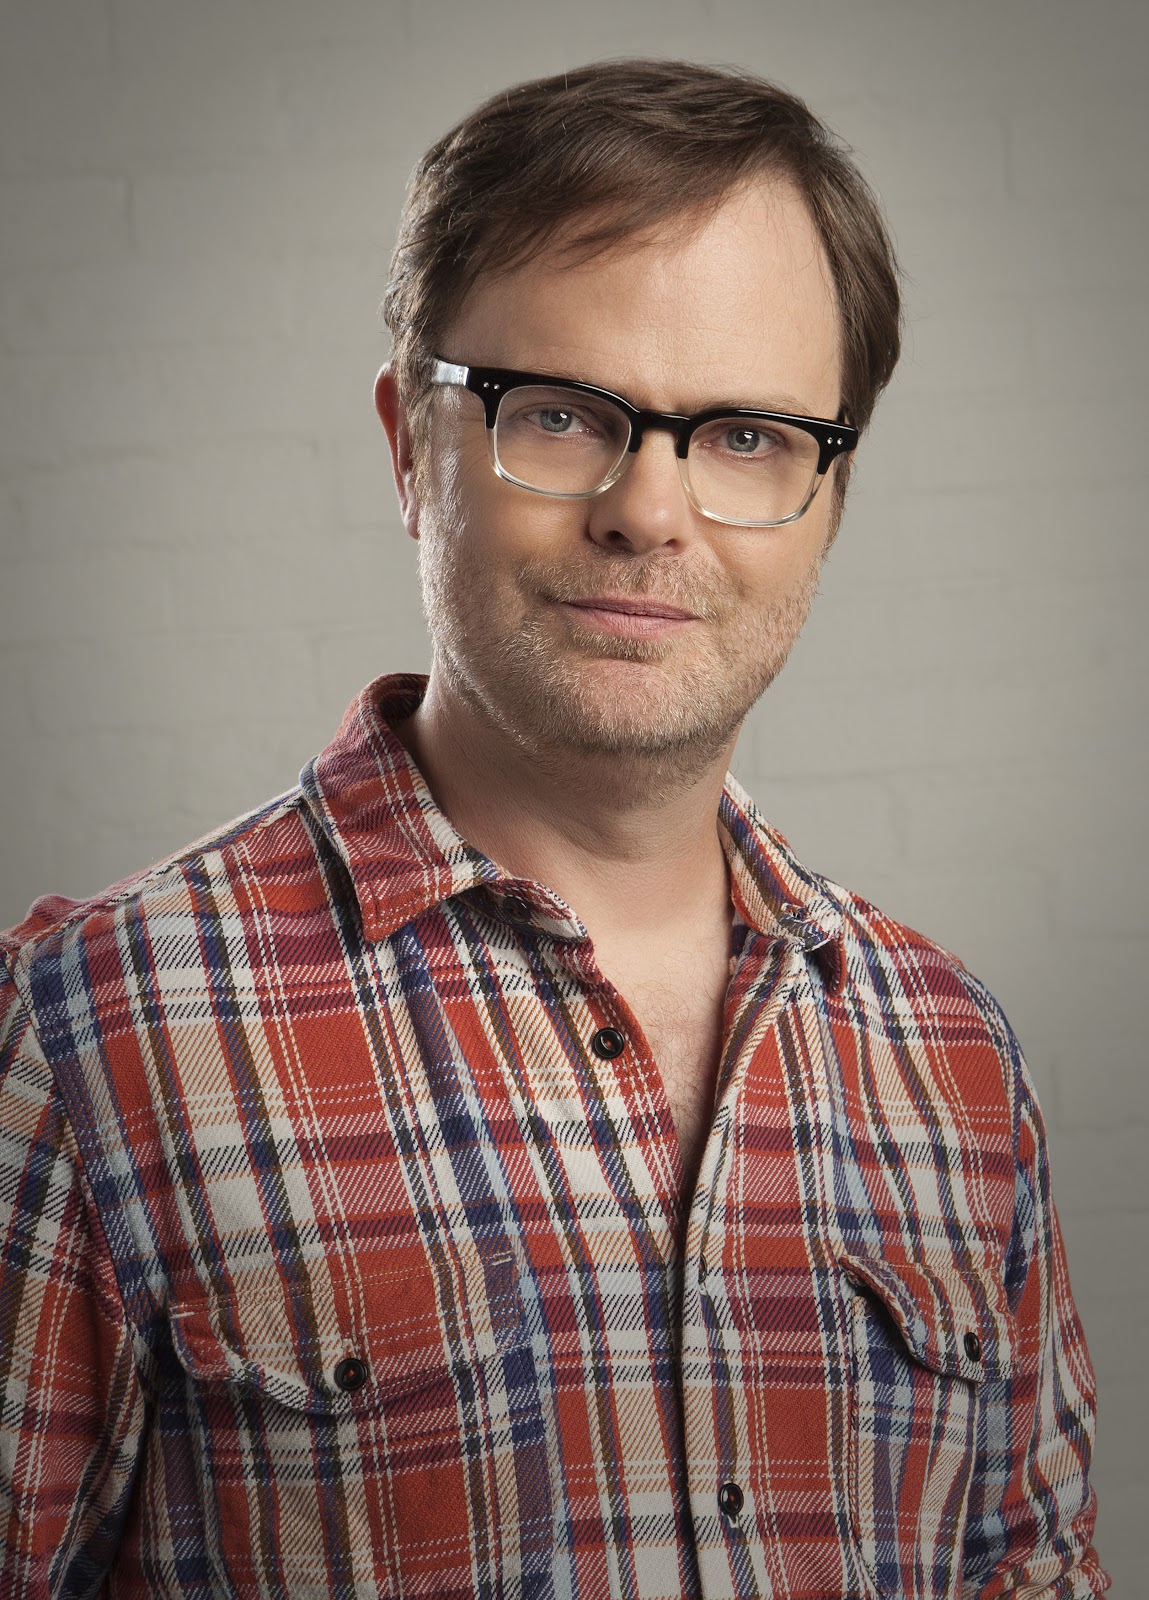 rainn wilson headshot 2 copy 2.jpg